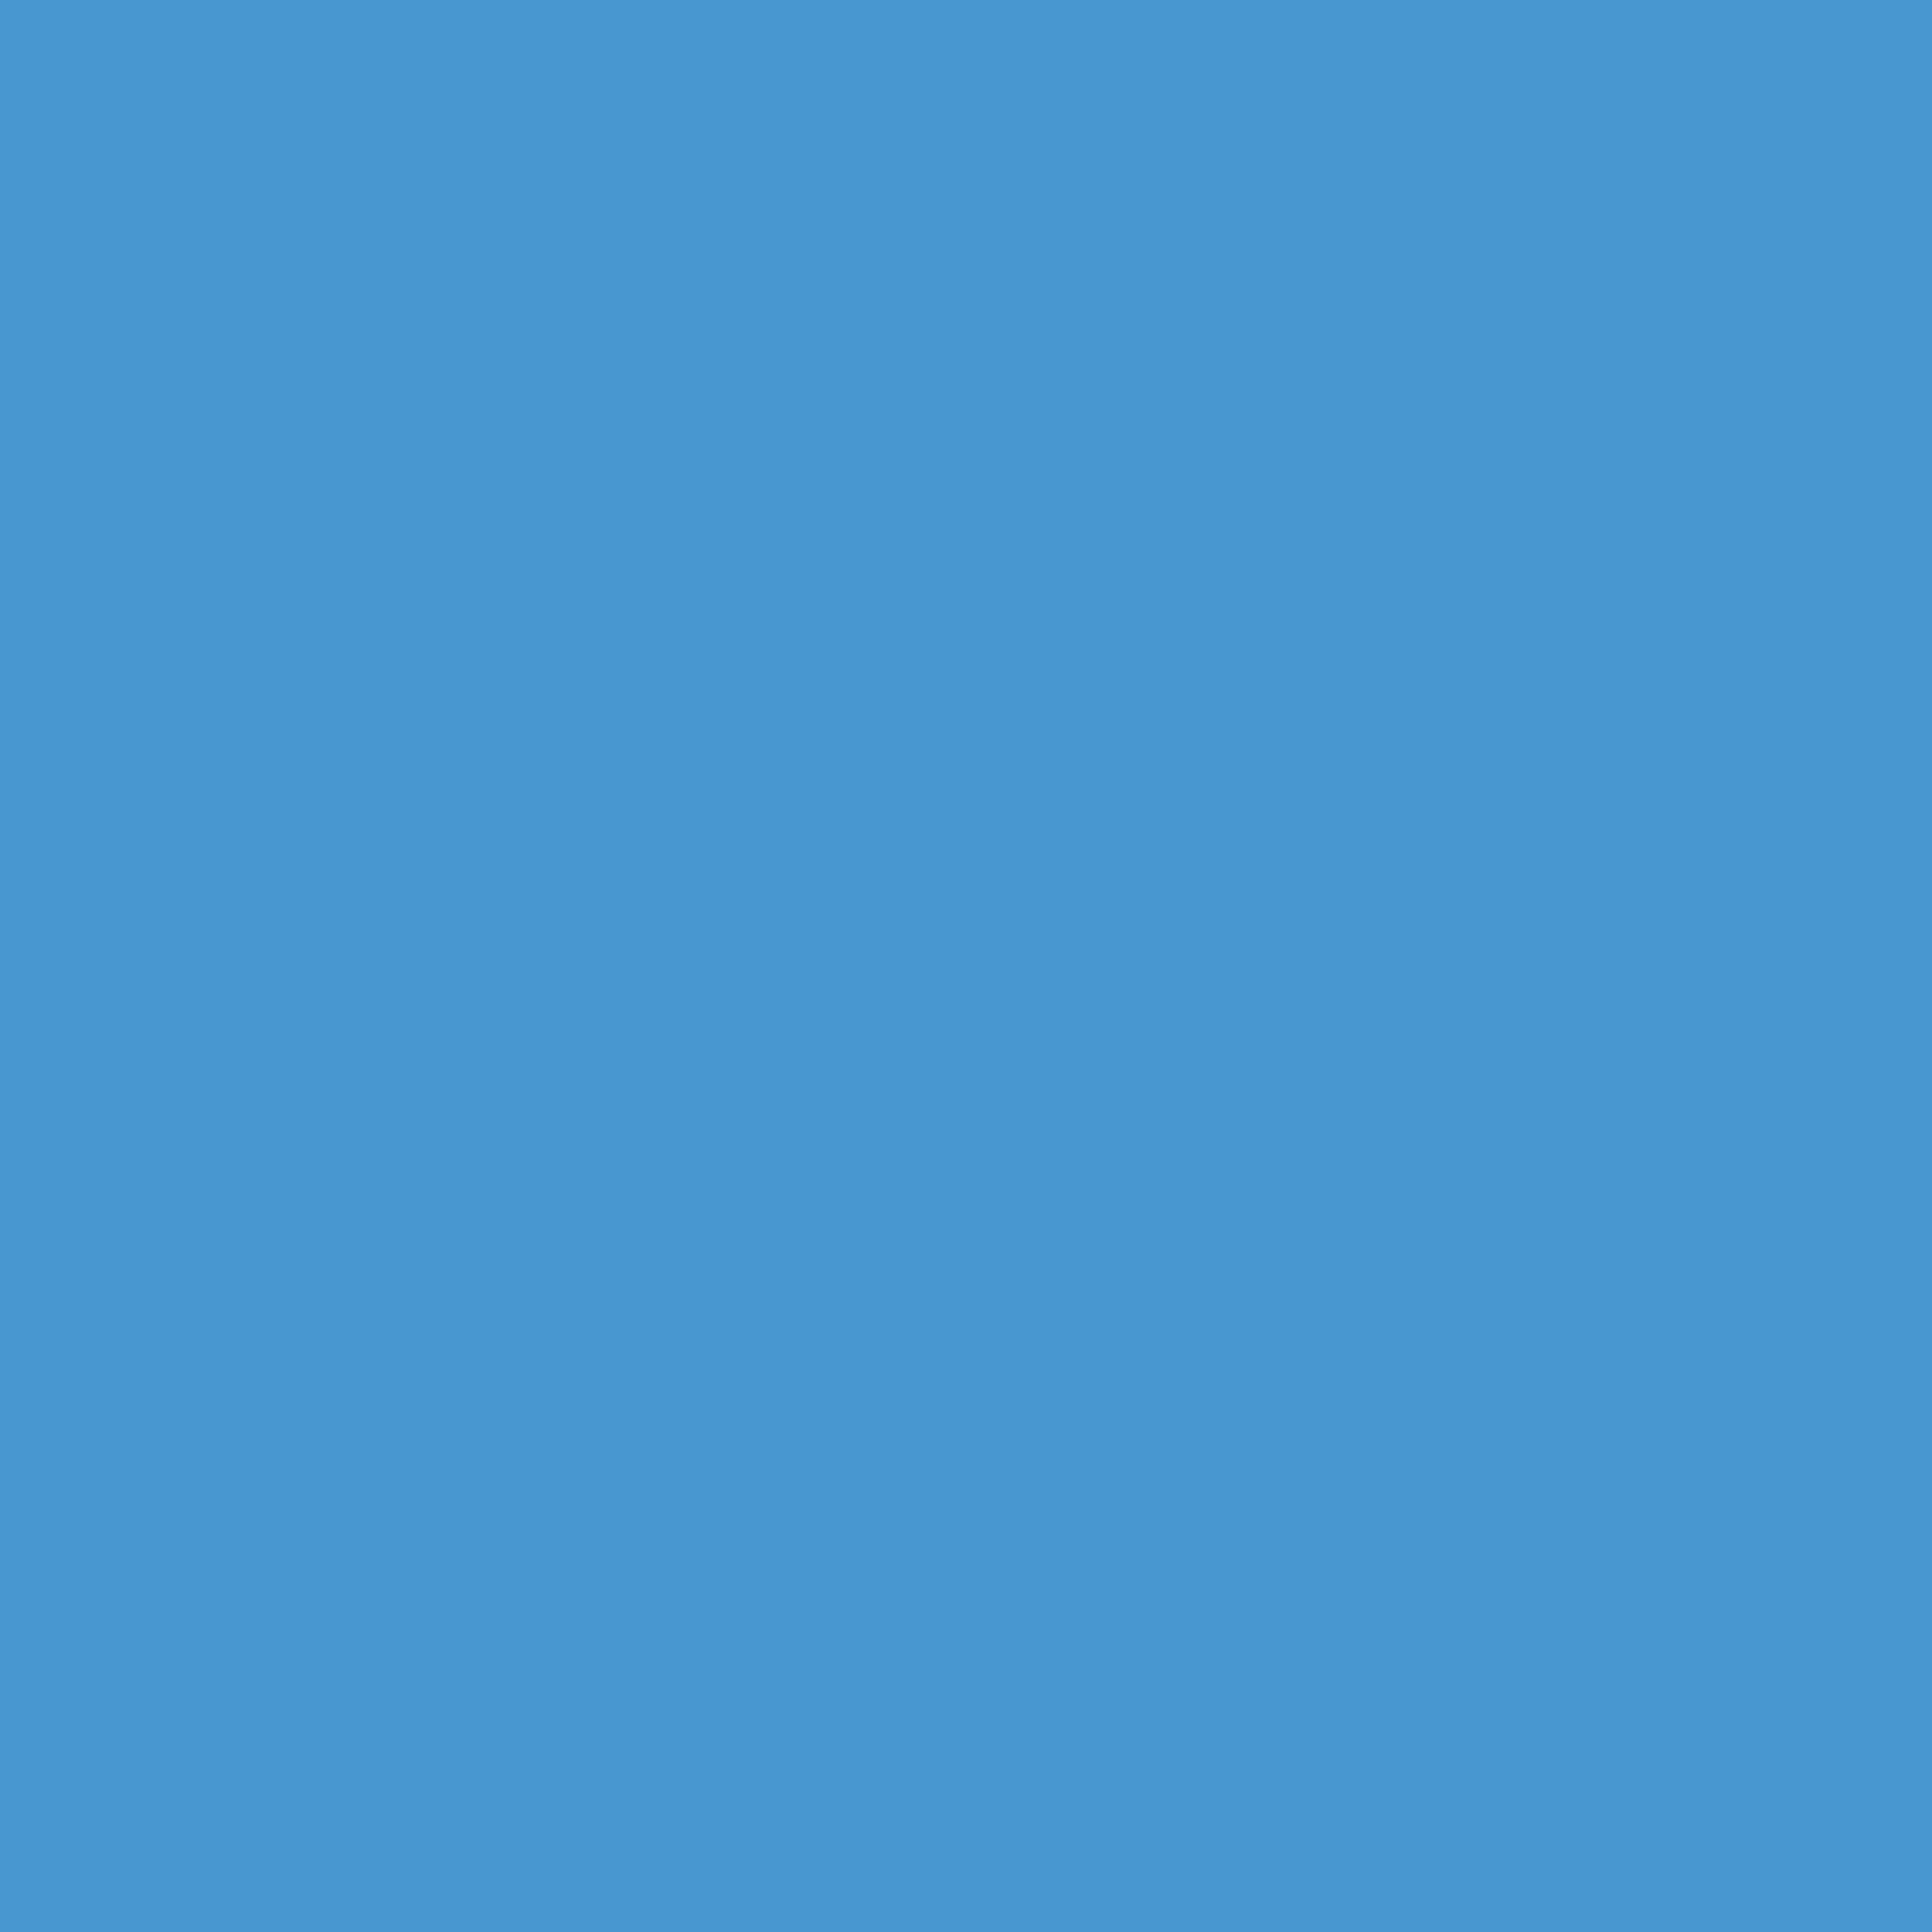 2732x2732 Celestial Blue Solid Color Background